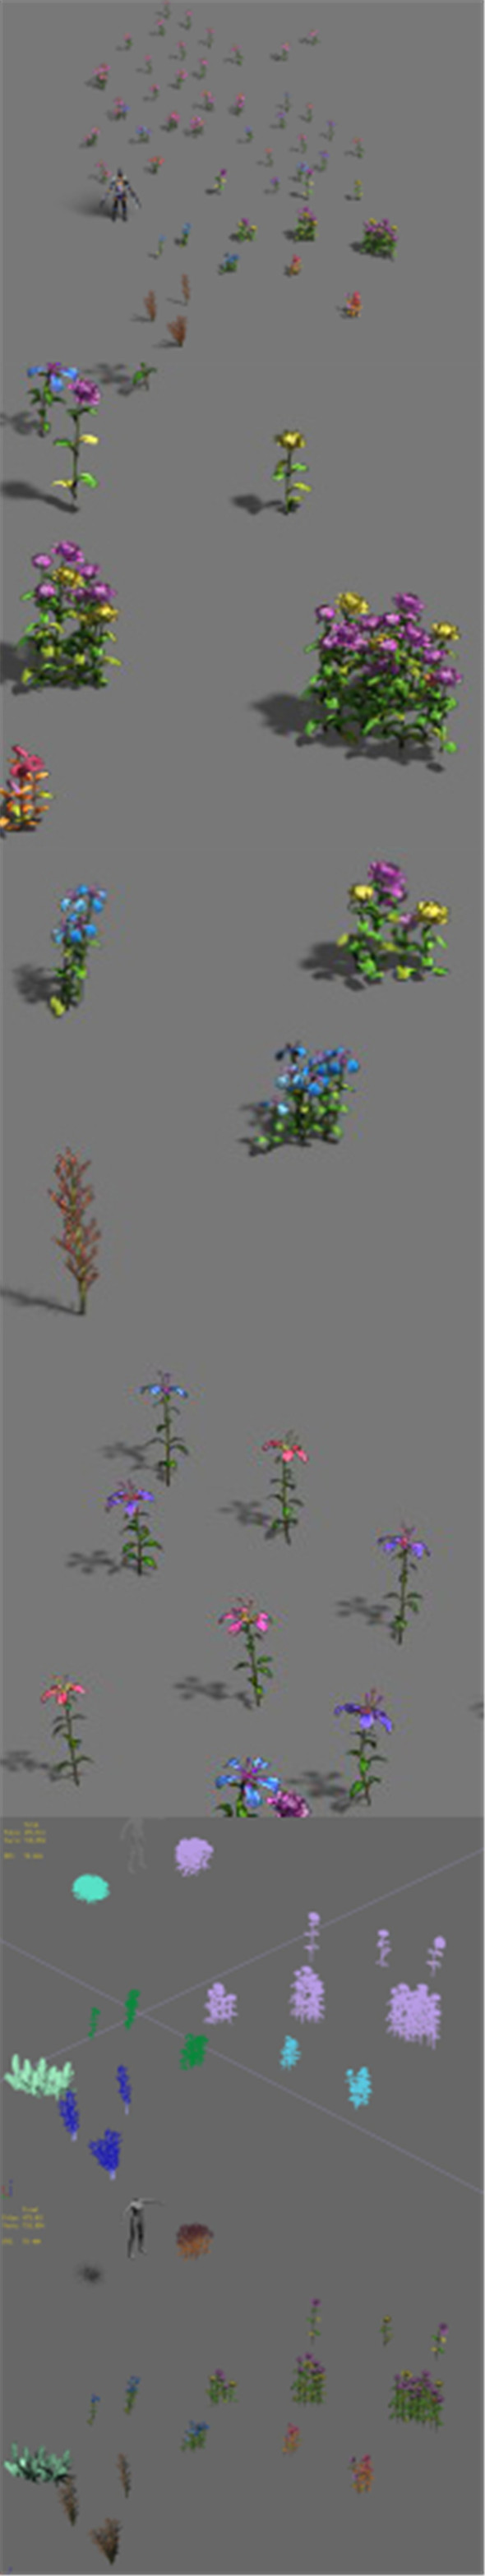 Plant - flowers - 3DOcean Item for Sale